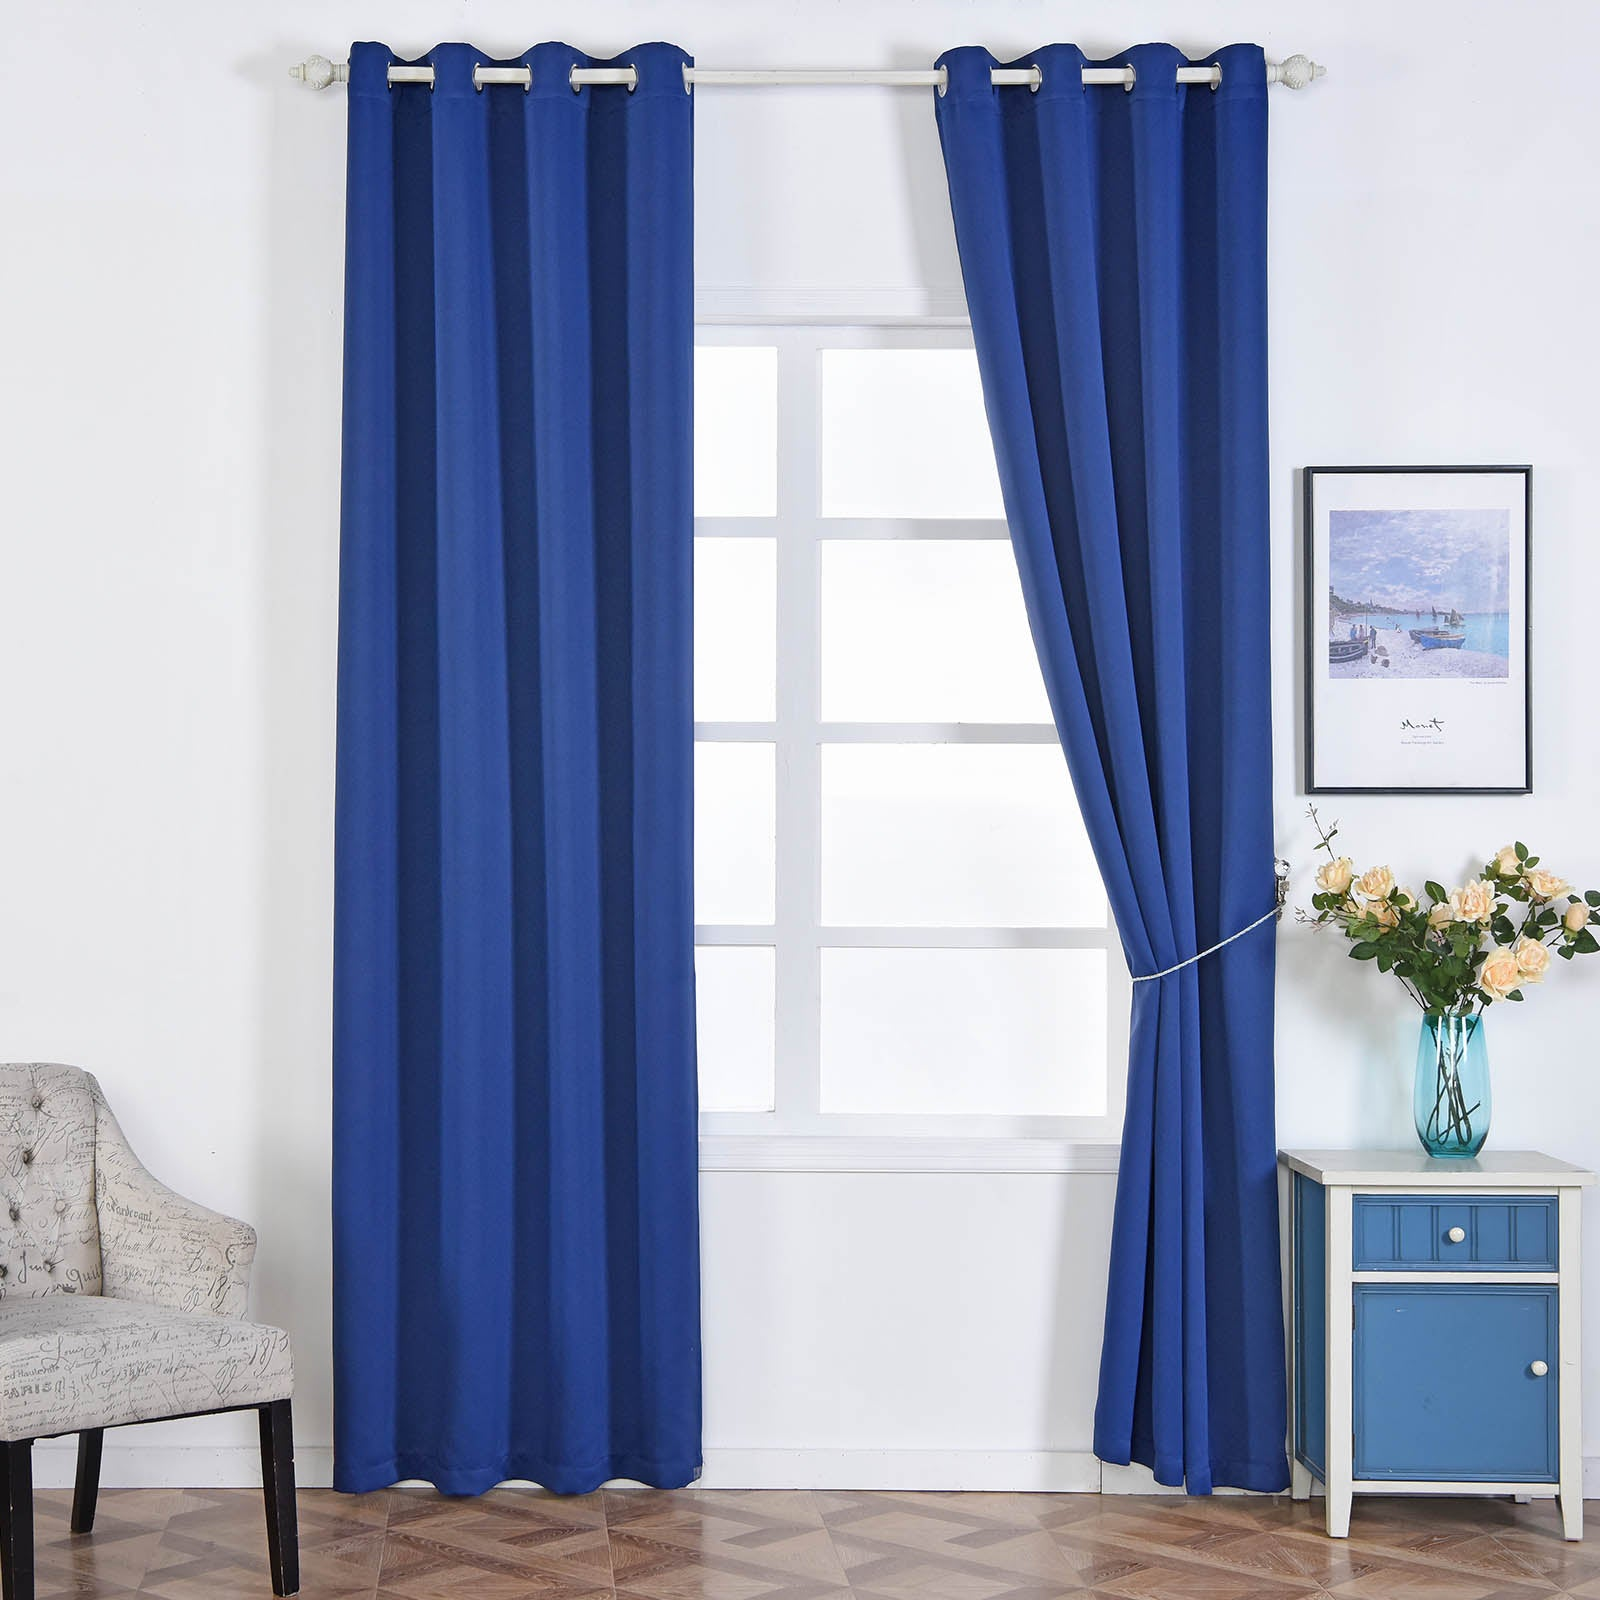 navy blue curtains blackout curtains 52x108 quot navy blue pack of 2 thermal 12427